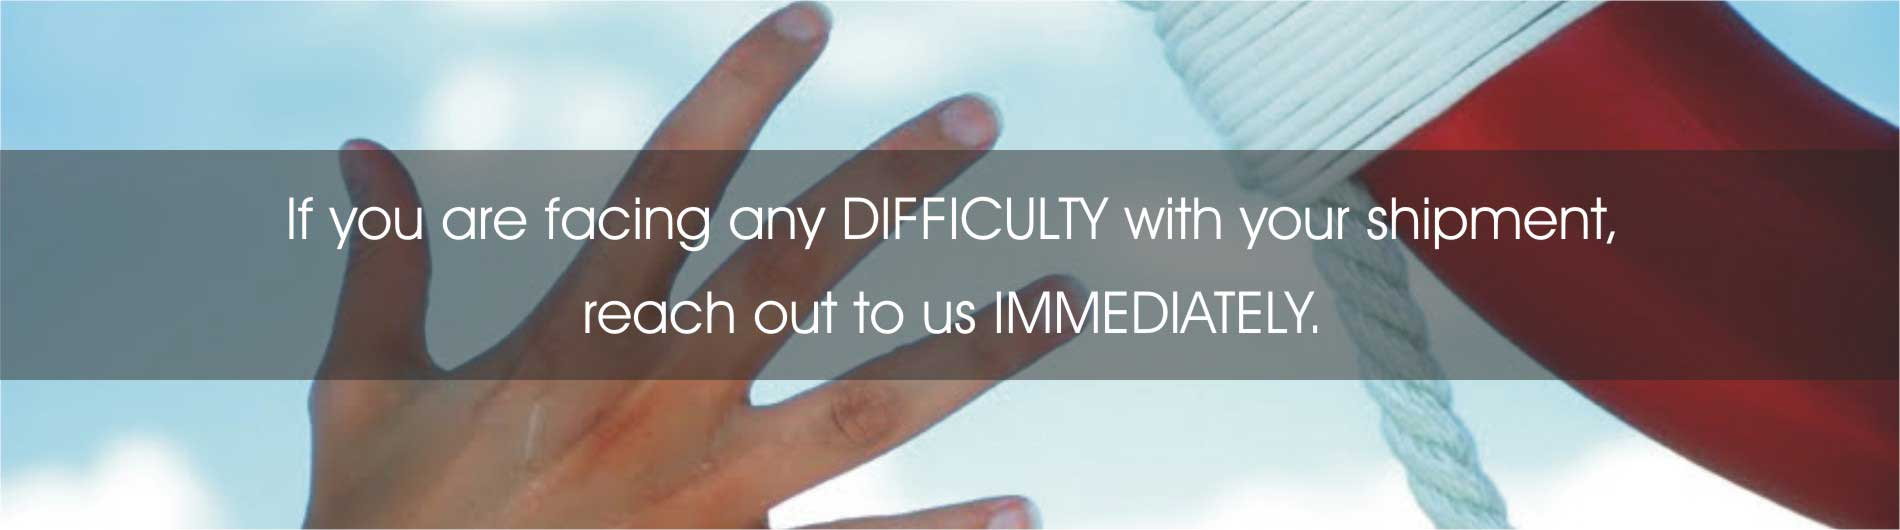 call-to-action8a-difficult-reach-out